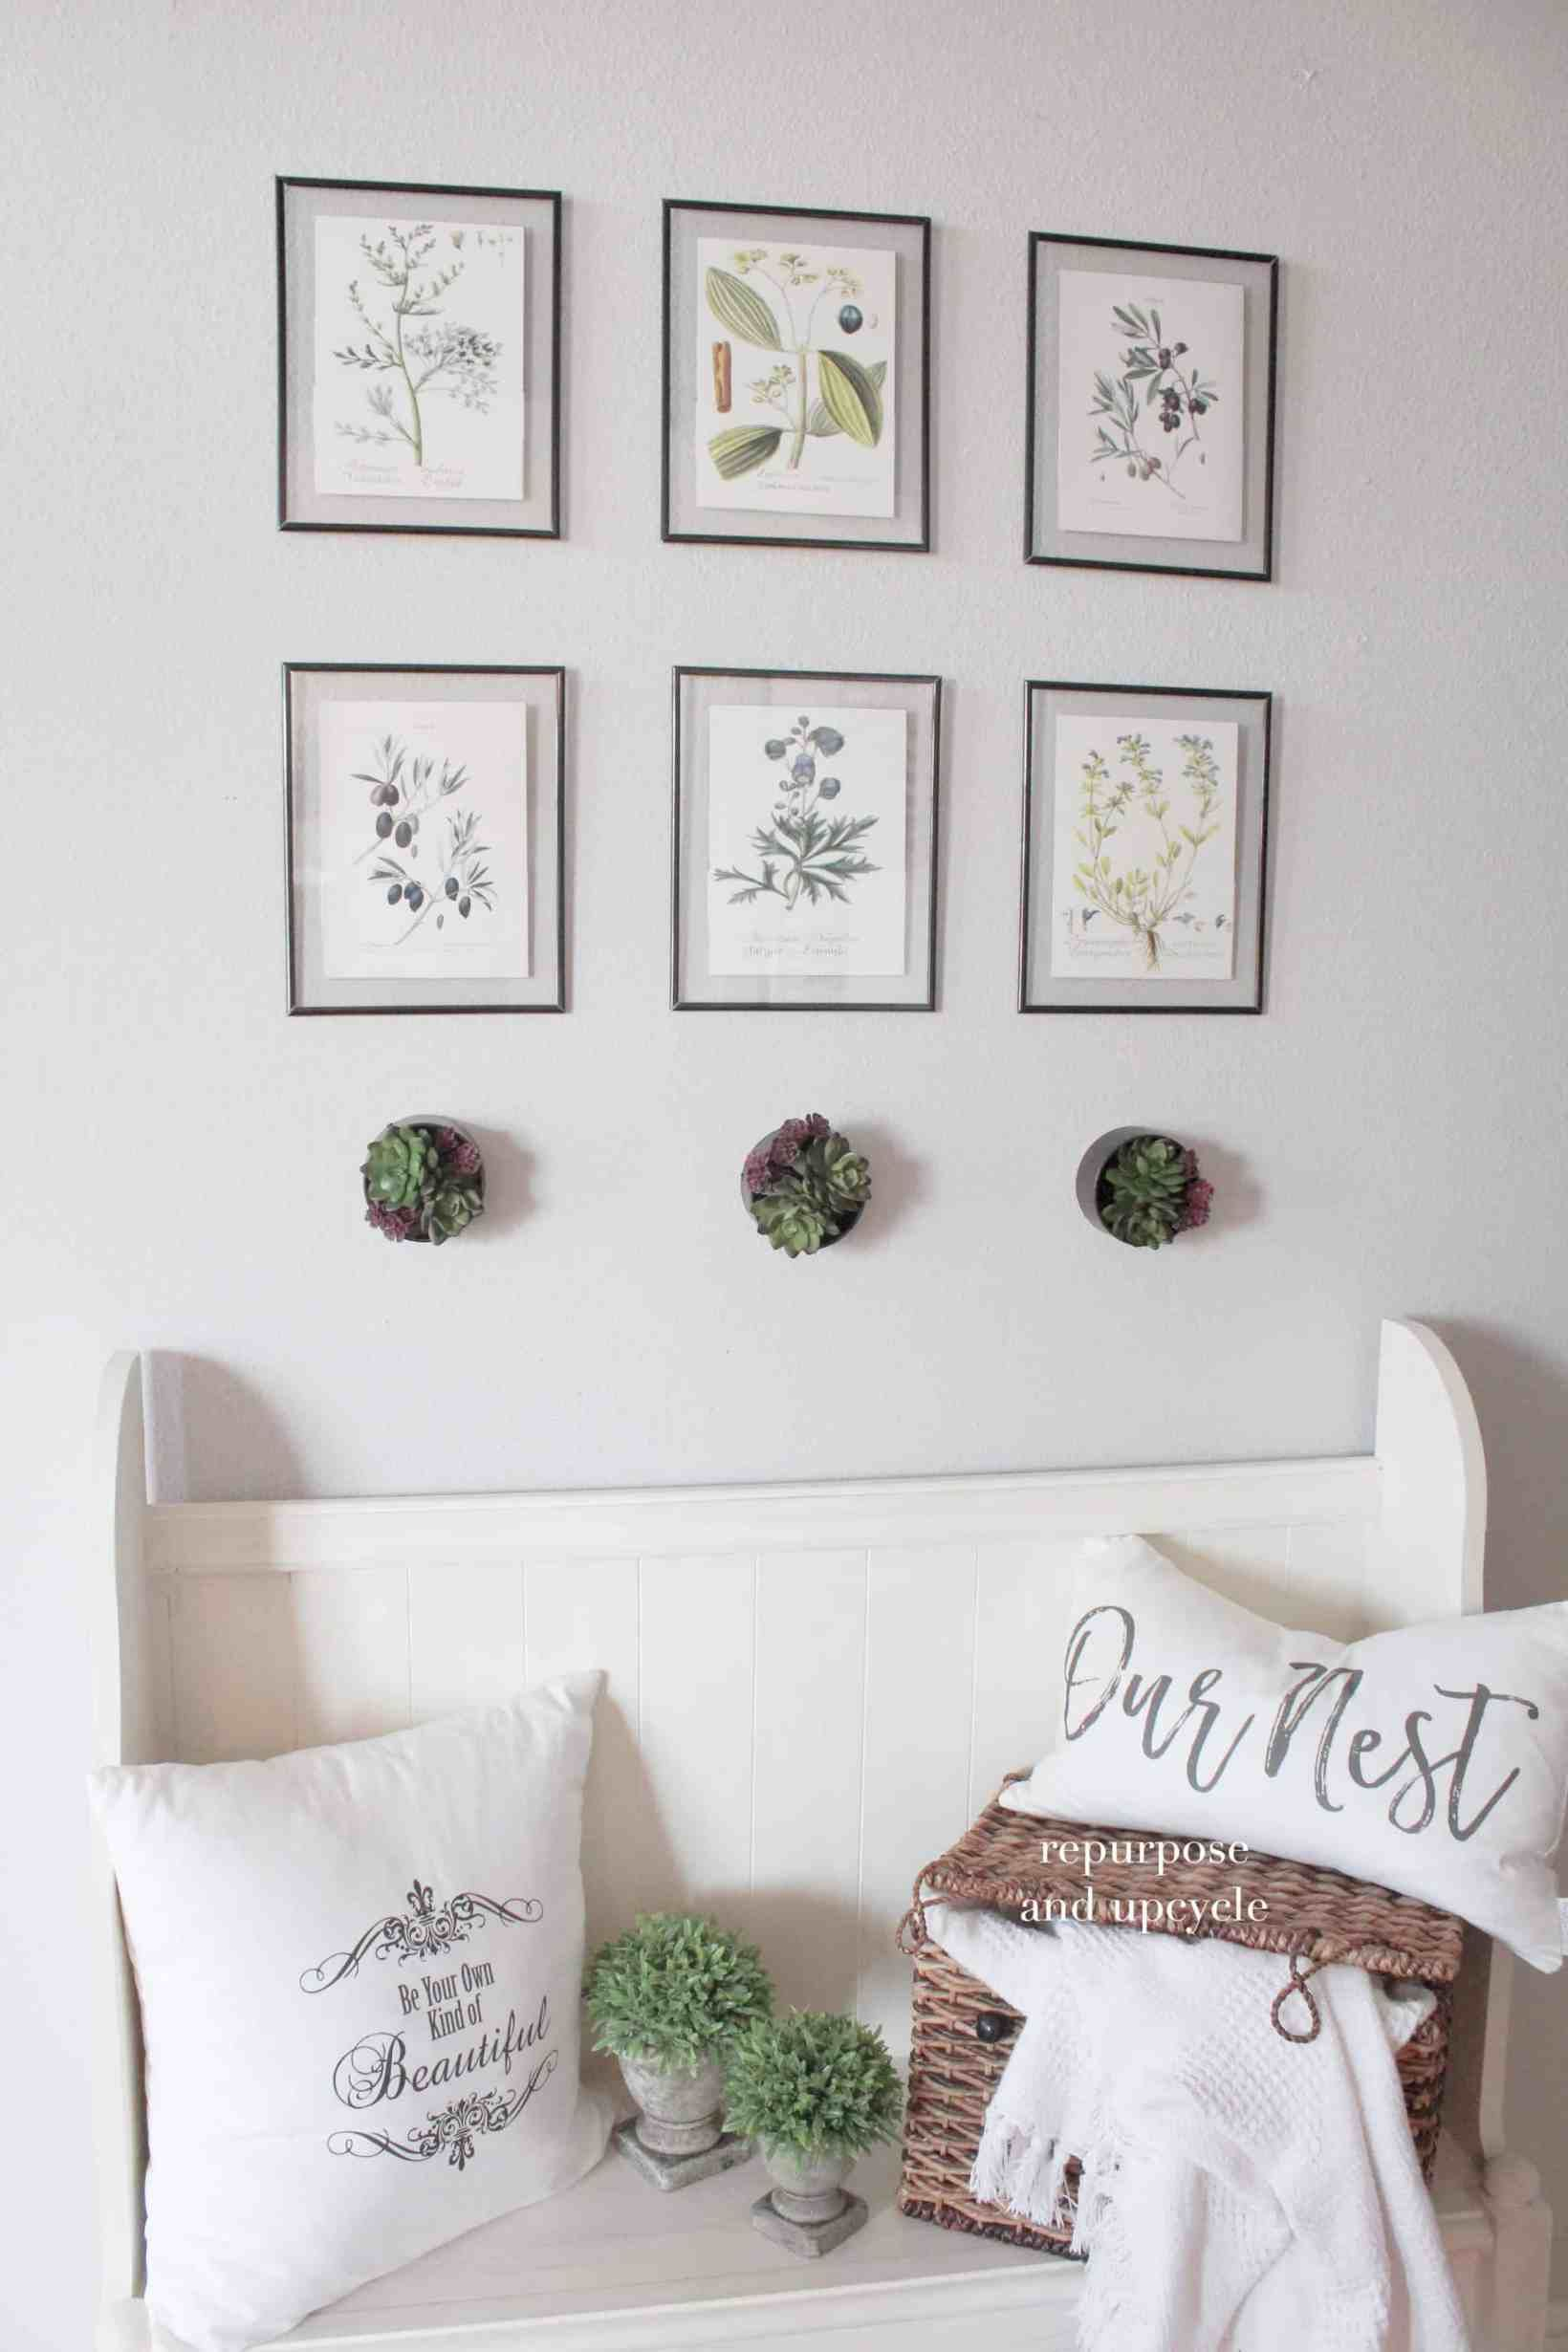 Diy Wall Planter For Indoor Decor And Free Botanical Printables